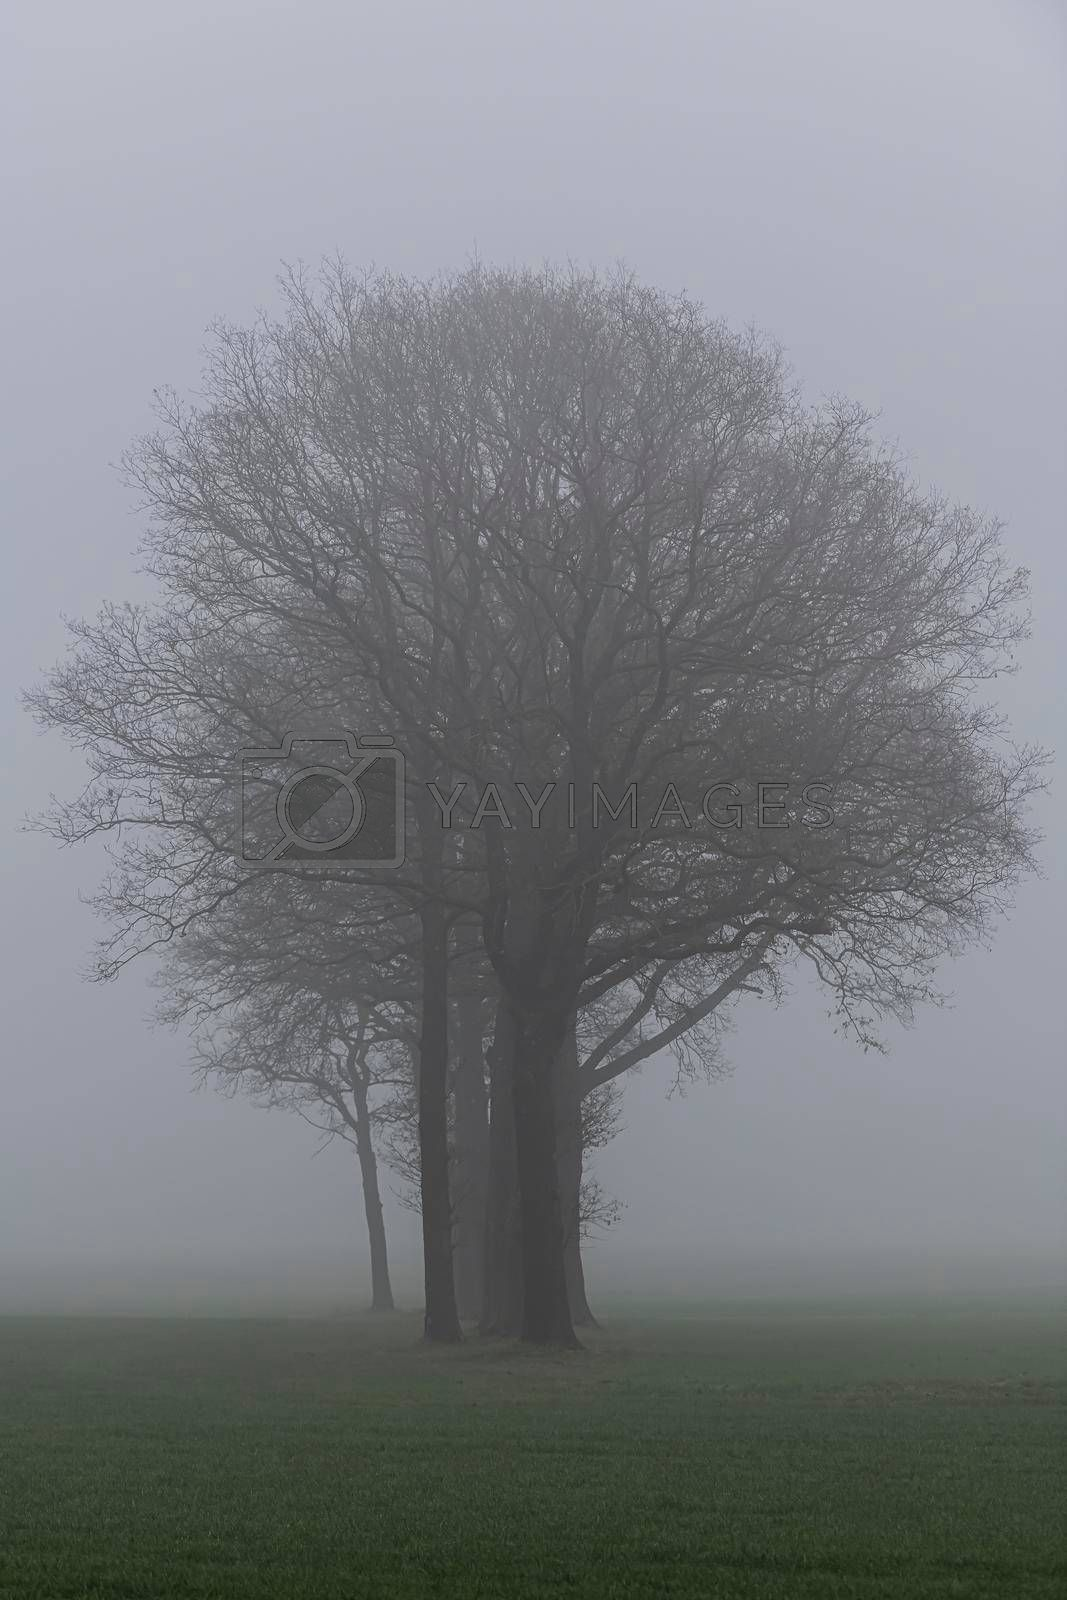 Royalty free image of Trees in the fog  by Tofotografie